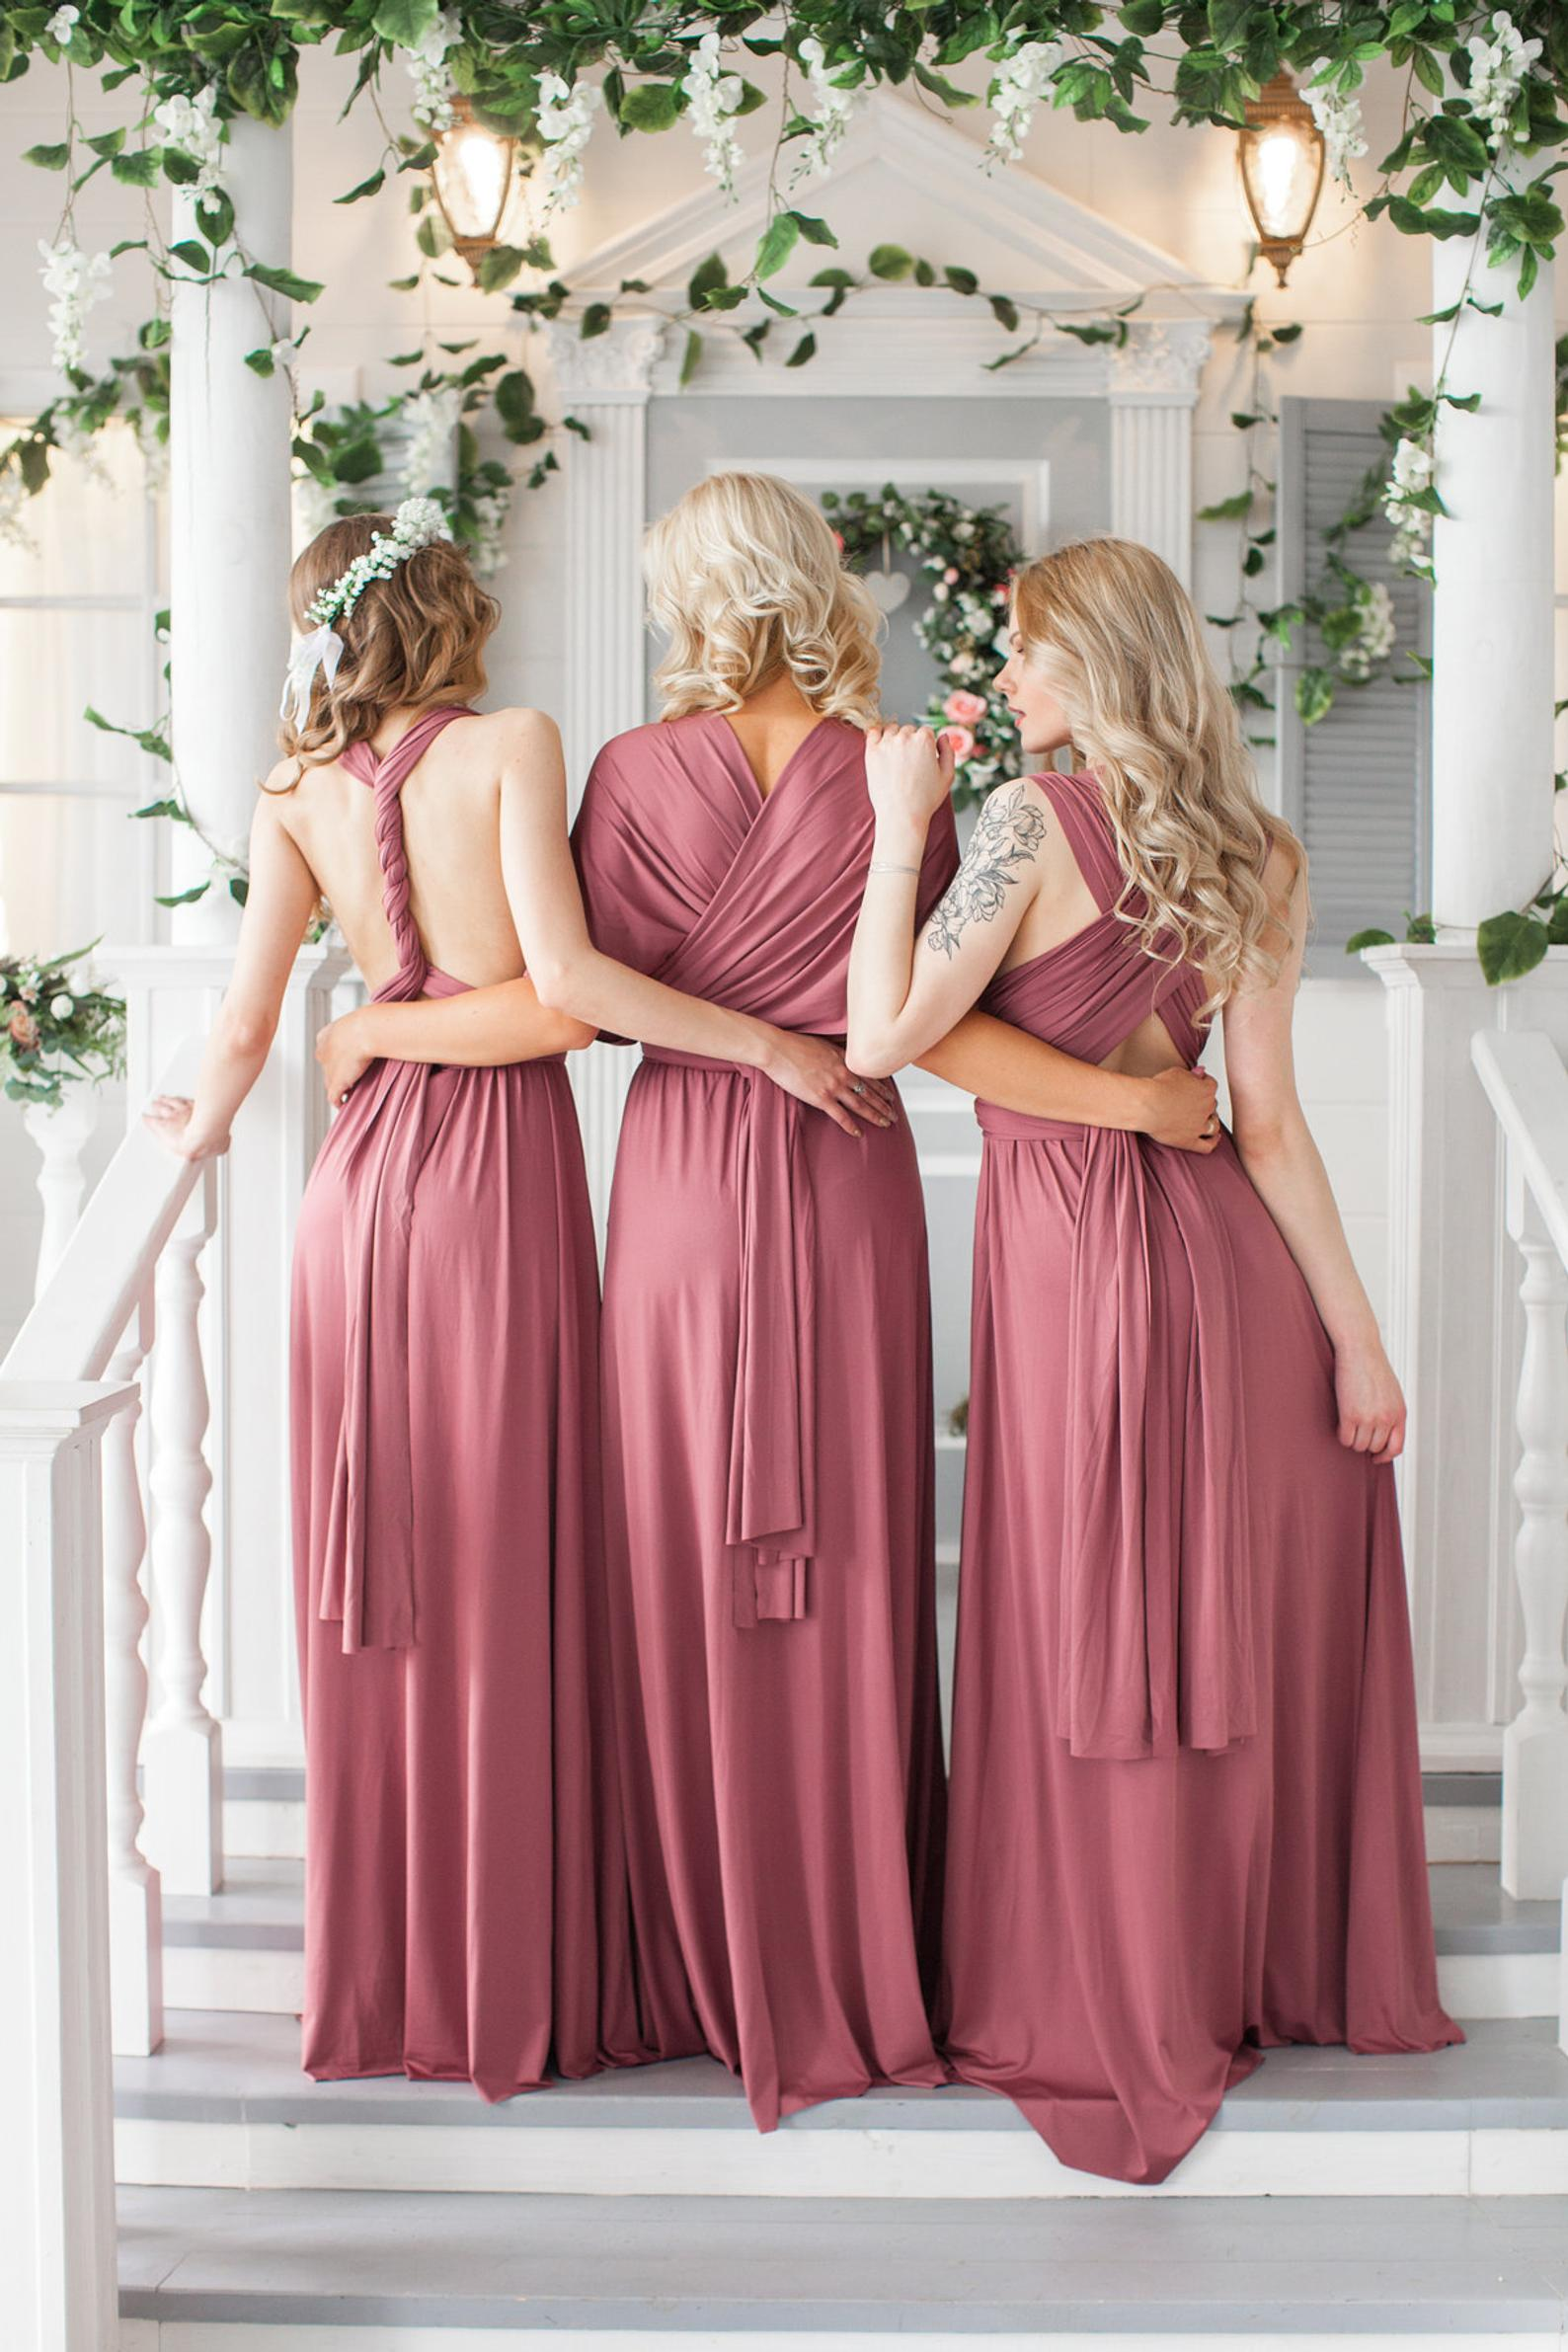 Bridesmaid Infinity Convertible Dress By I Do Crew Design